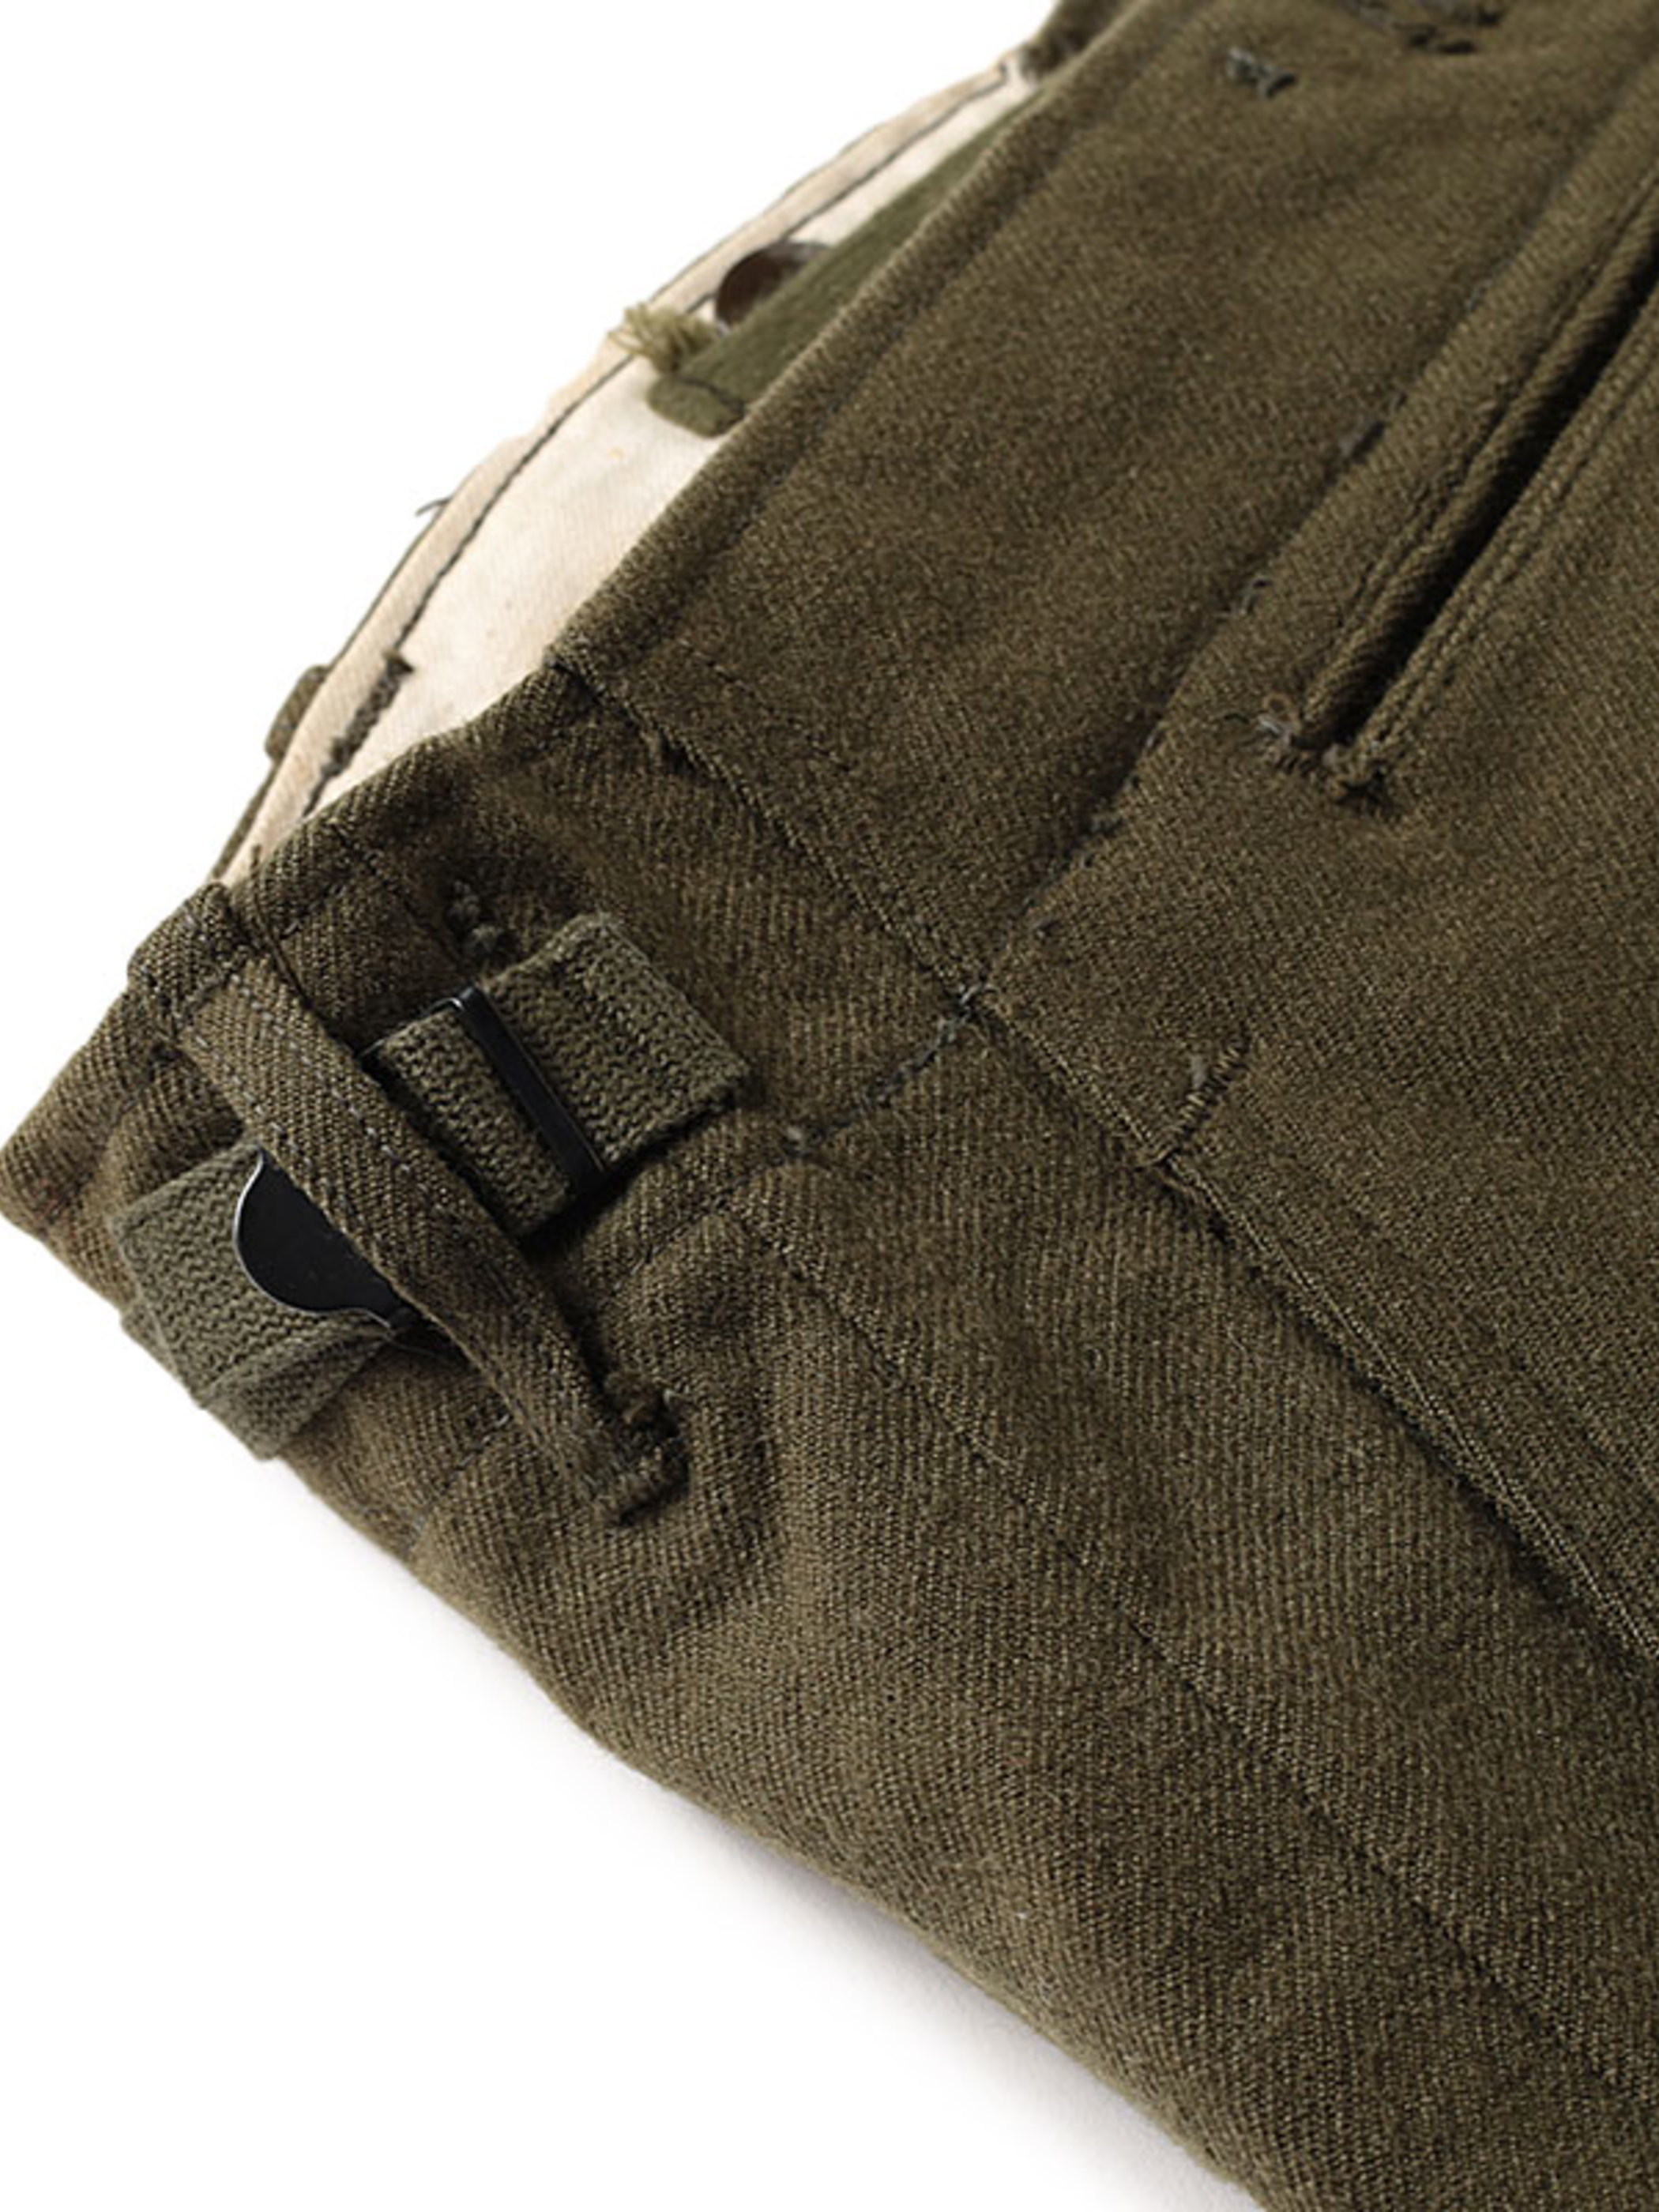 Used / US Army / 1940's - 1950's Wool Pants / 34inch